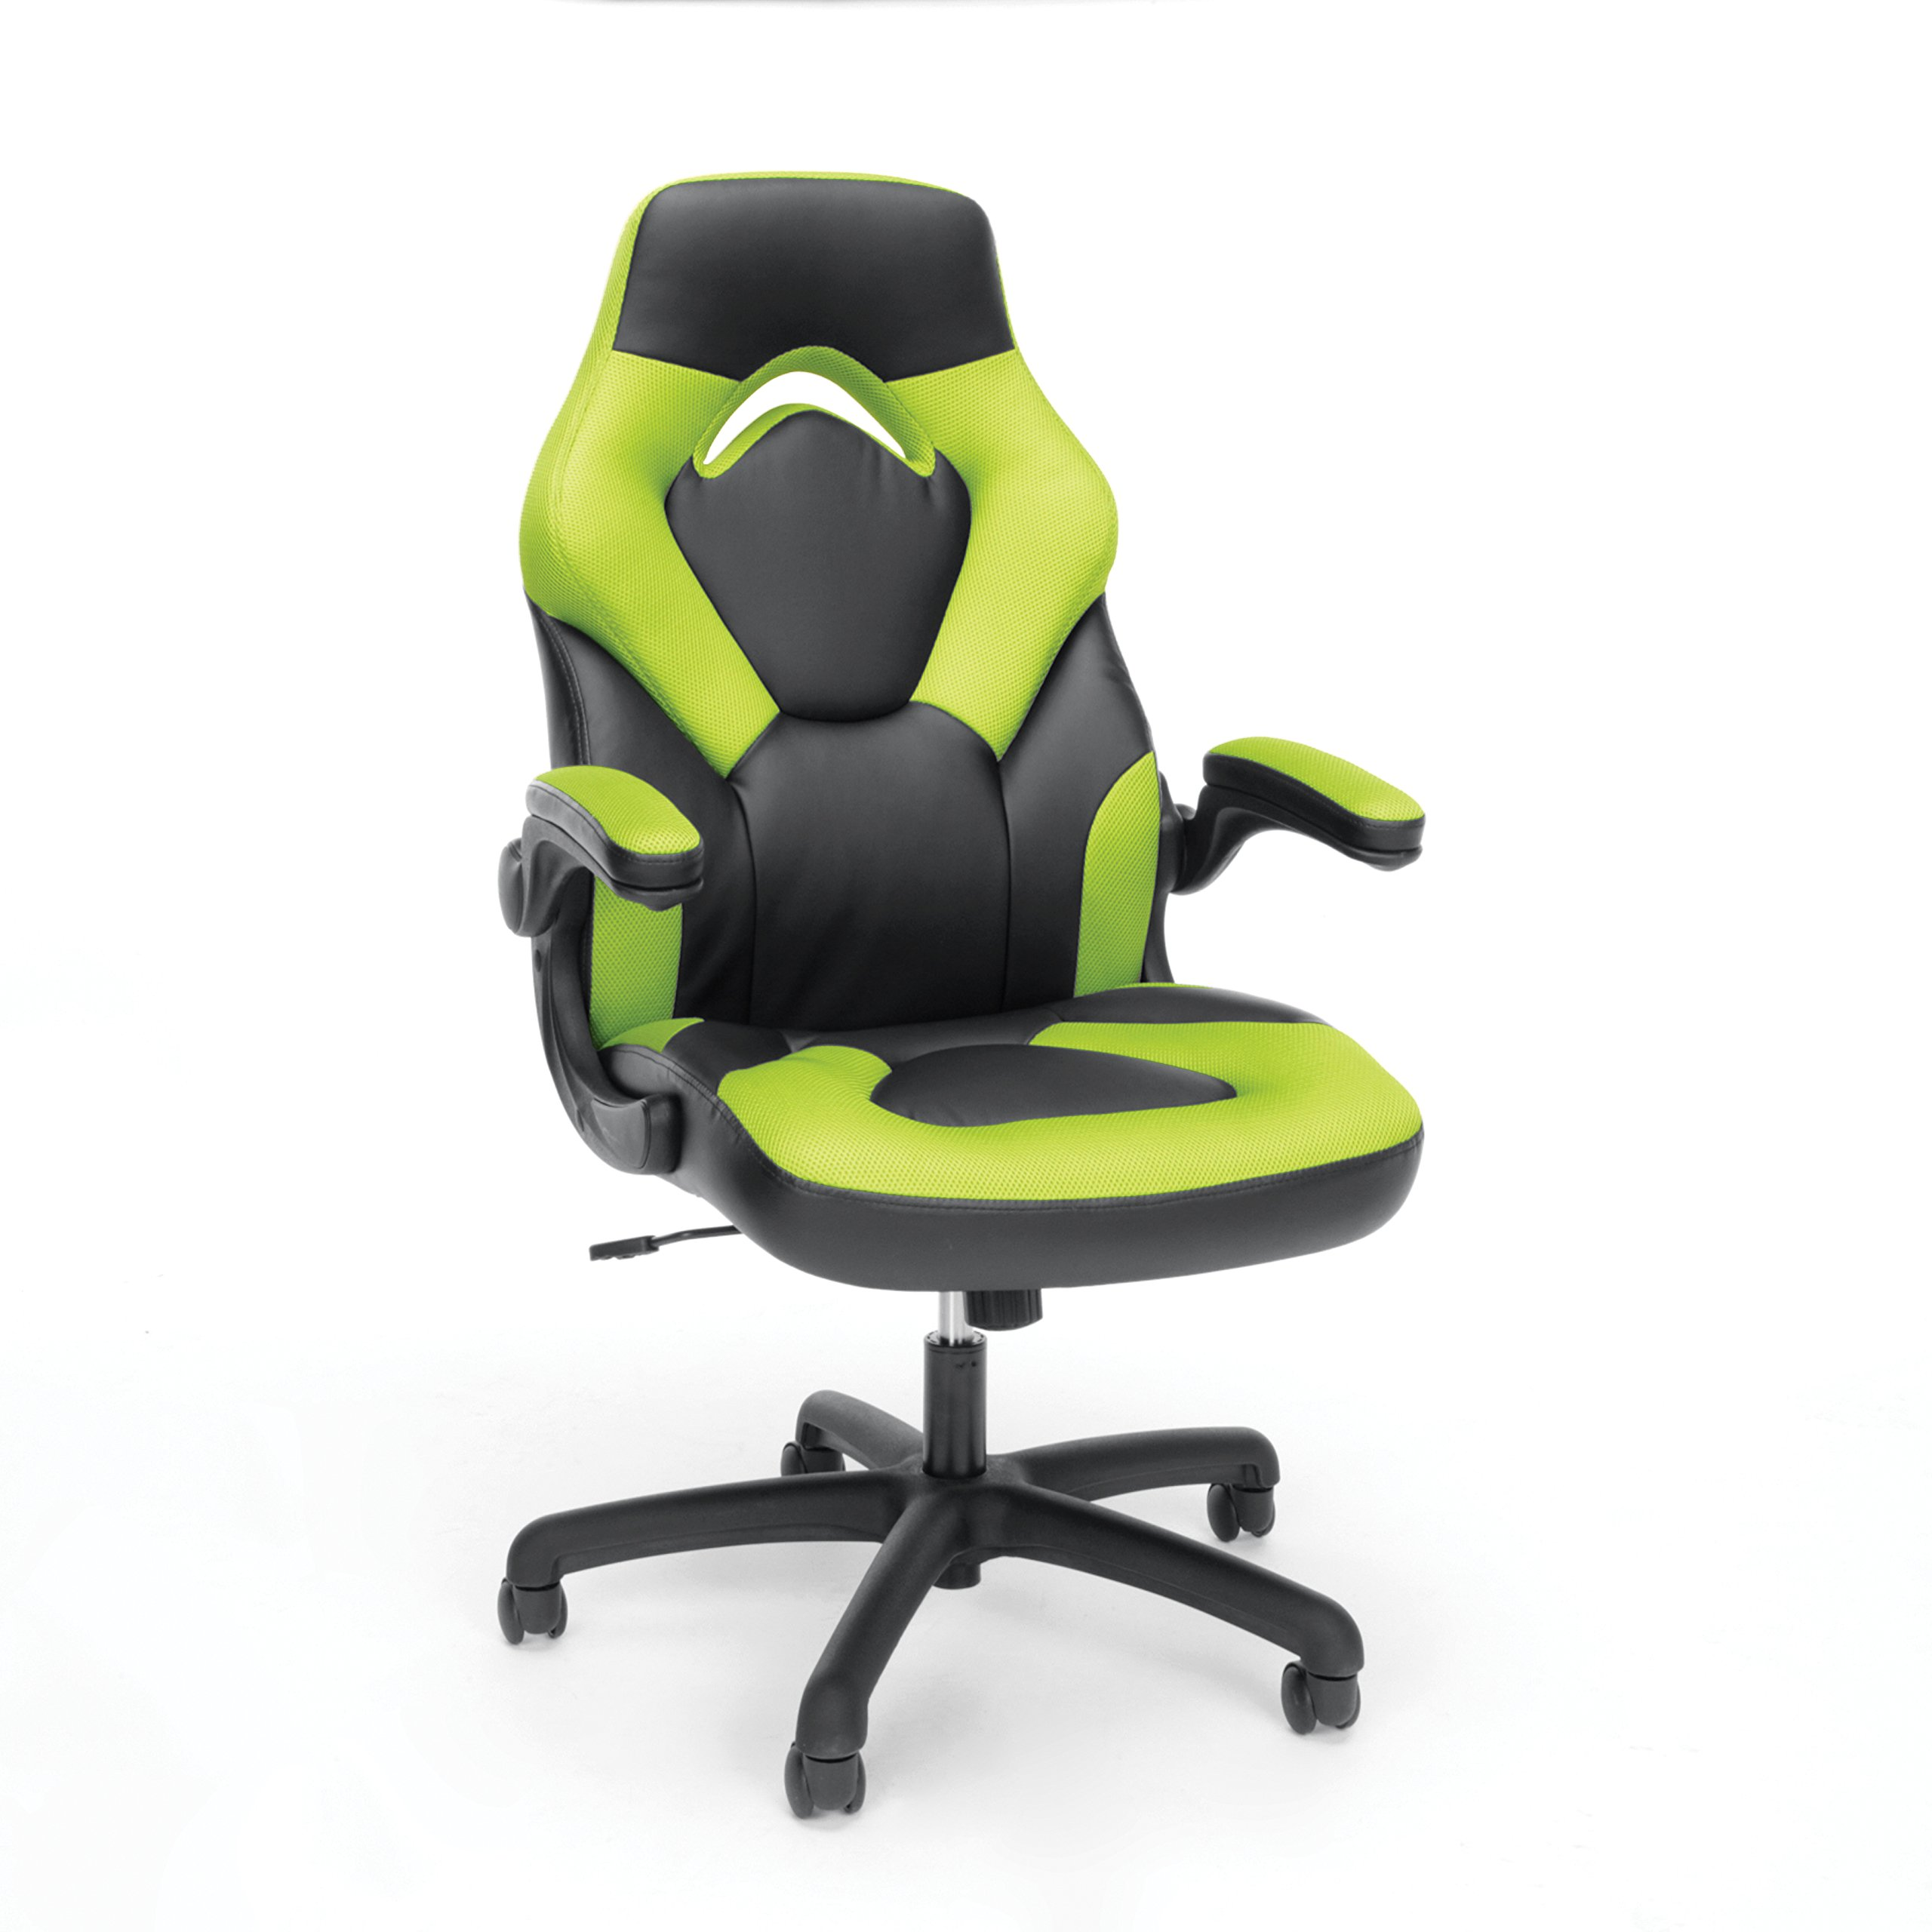 Essentials Racing Style Leather Gaming Chair - Ergonomic Swivel Computer, Office or Gaming Chair, Green (ESS-3085-GRN) by OFM